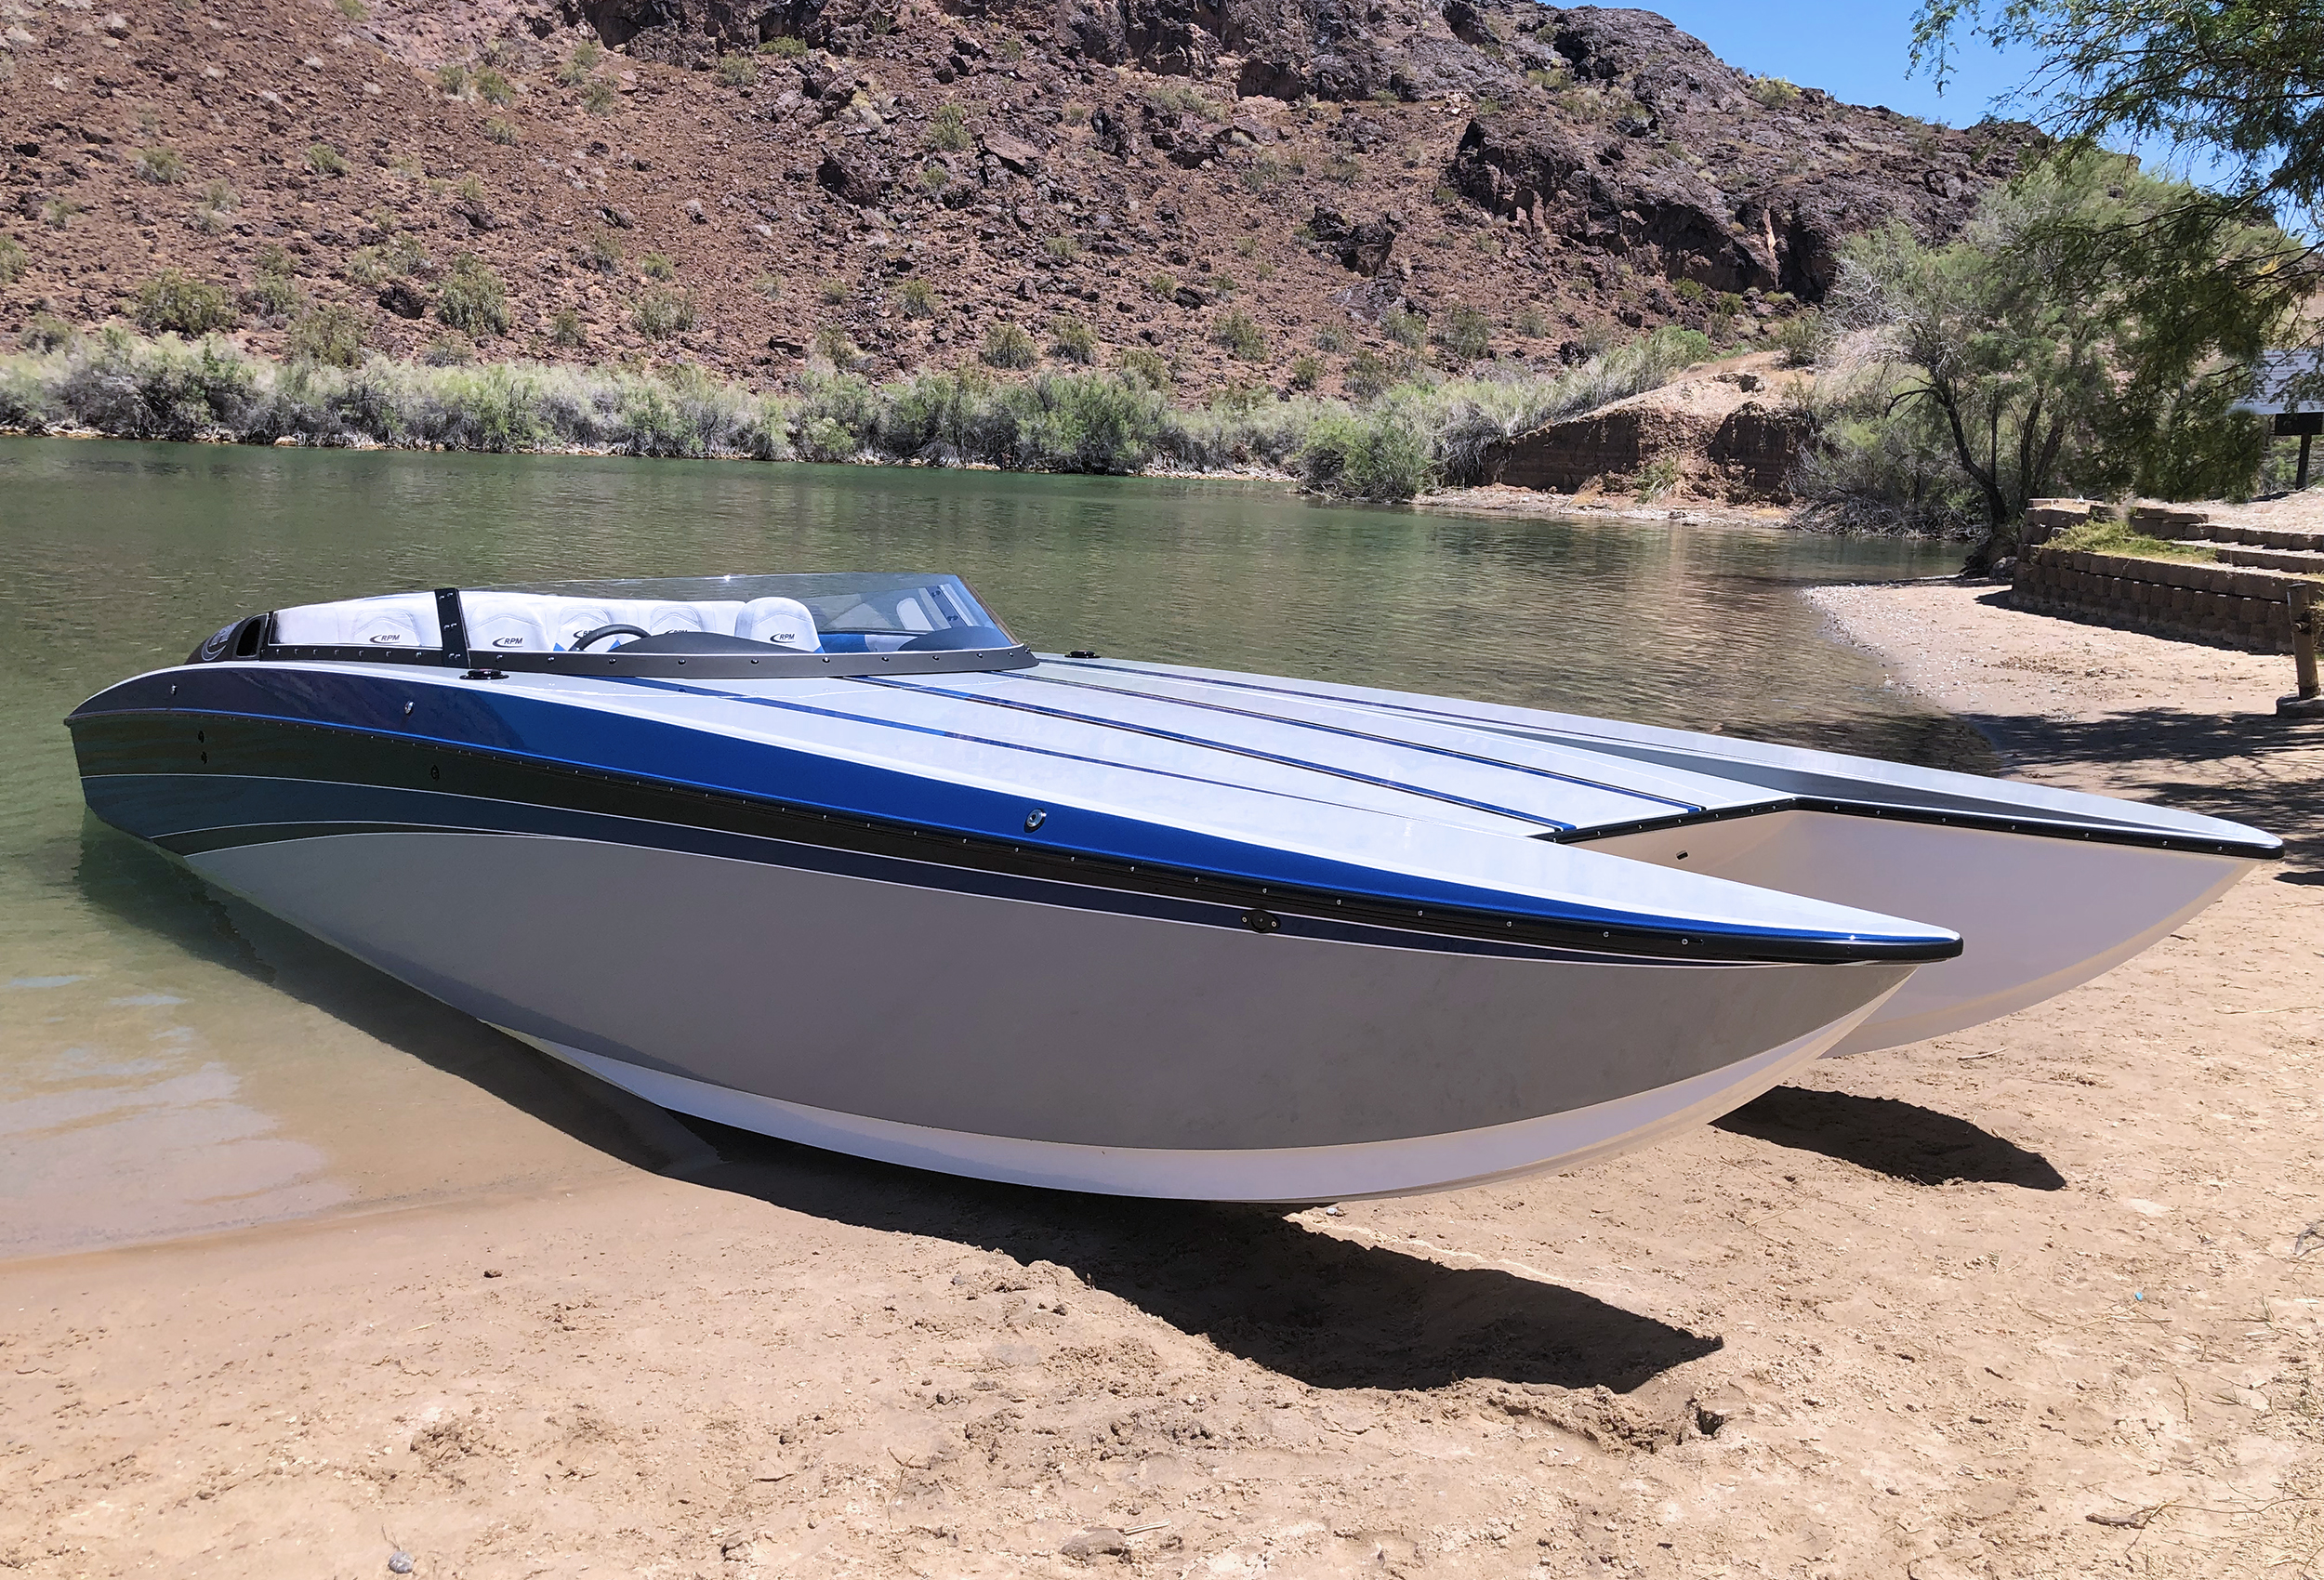 RPM 26 Redline Lavey Craft - beached.jpg